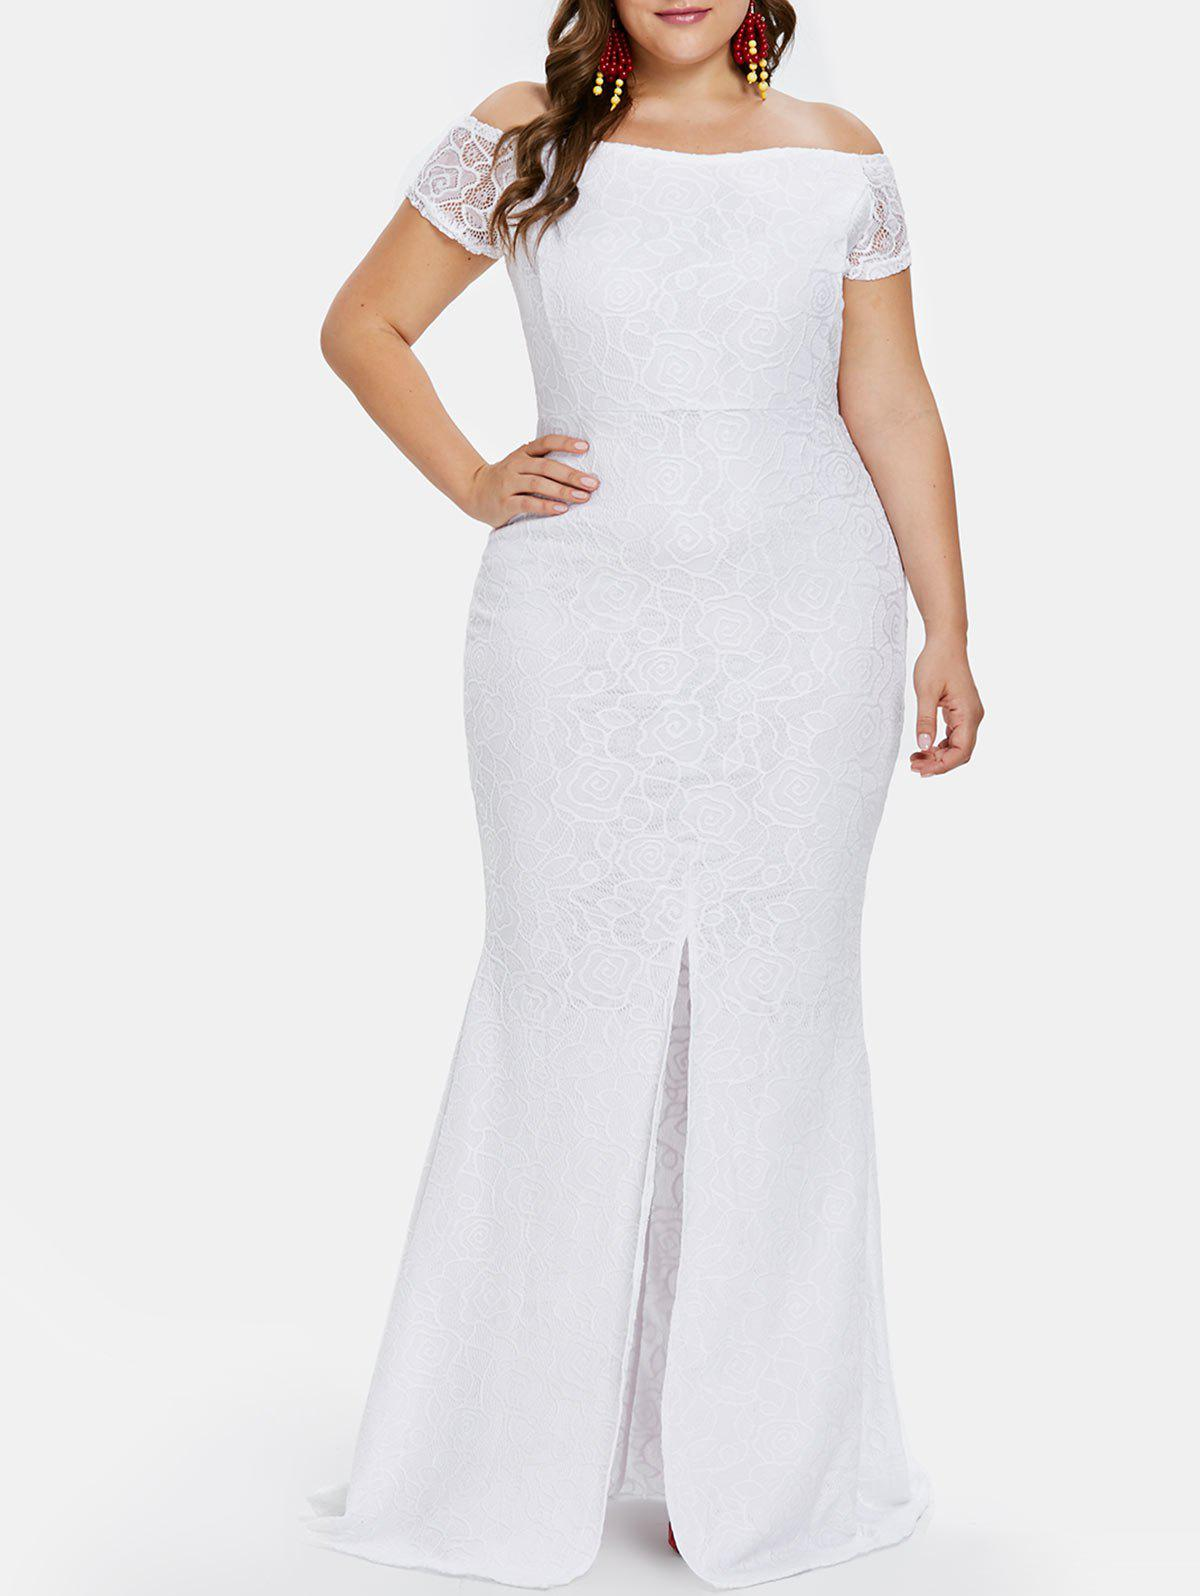 36% OFF] Plus Size Off Shoulder Lace Maxi Dress | Rosegal